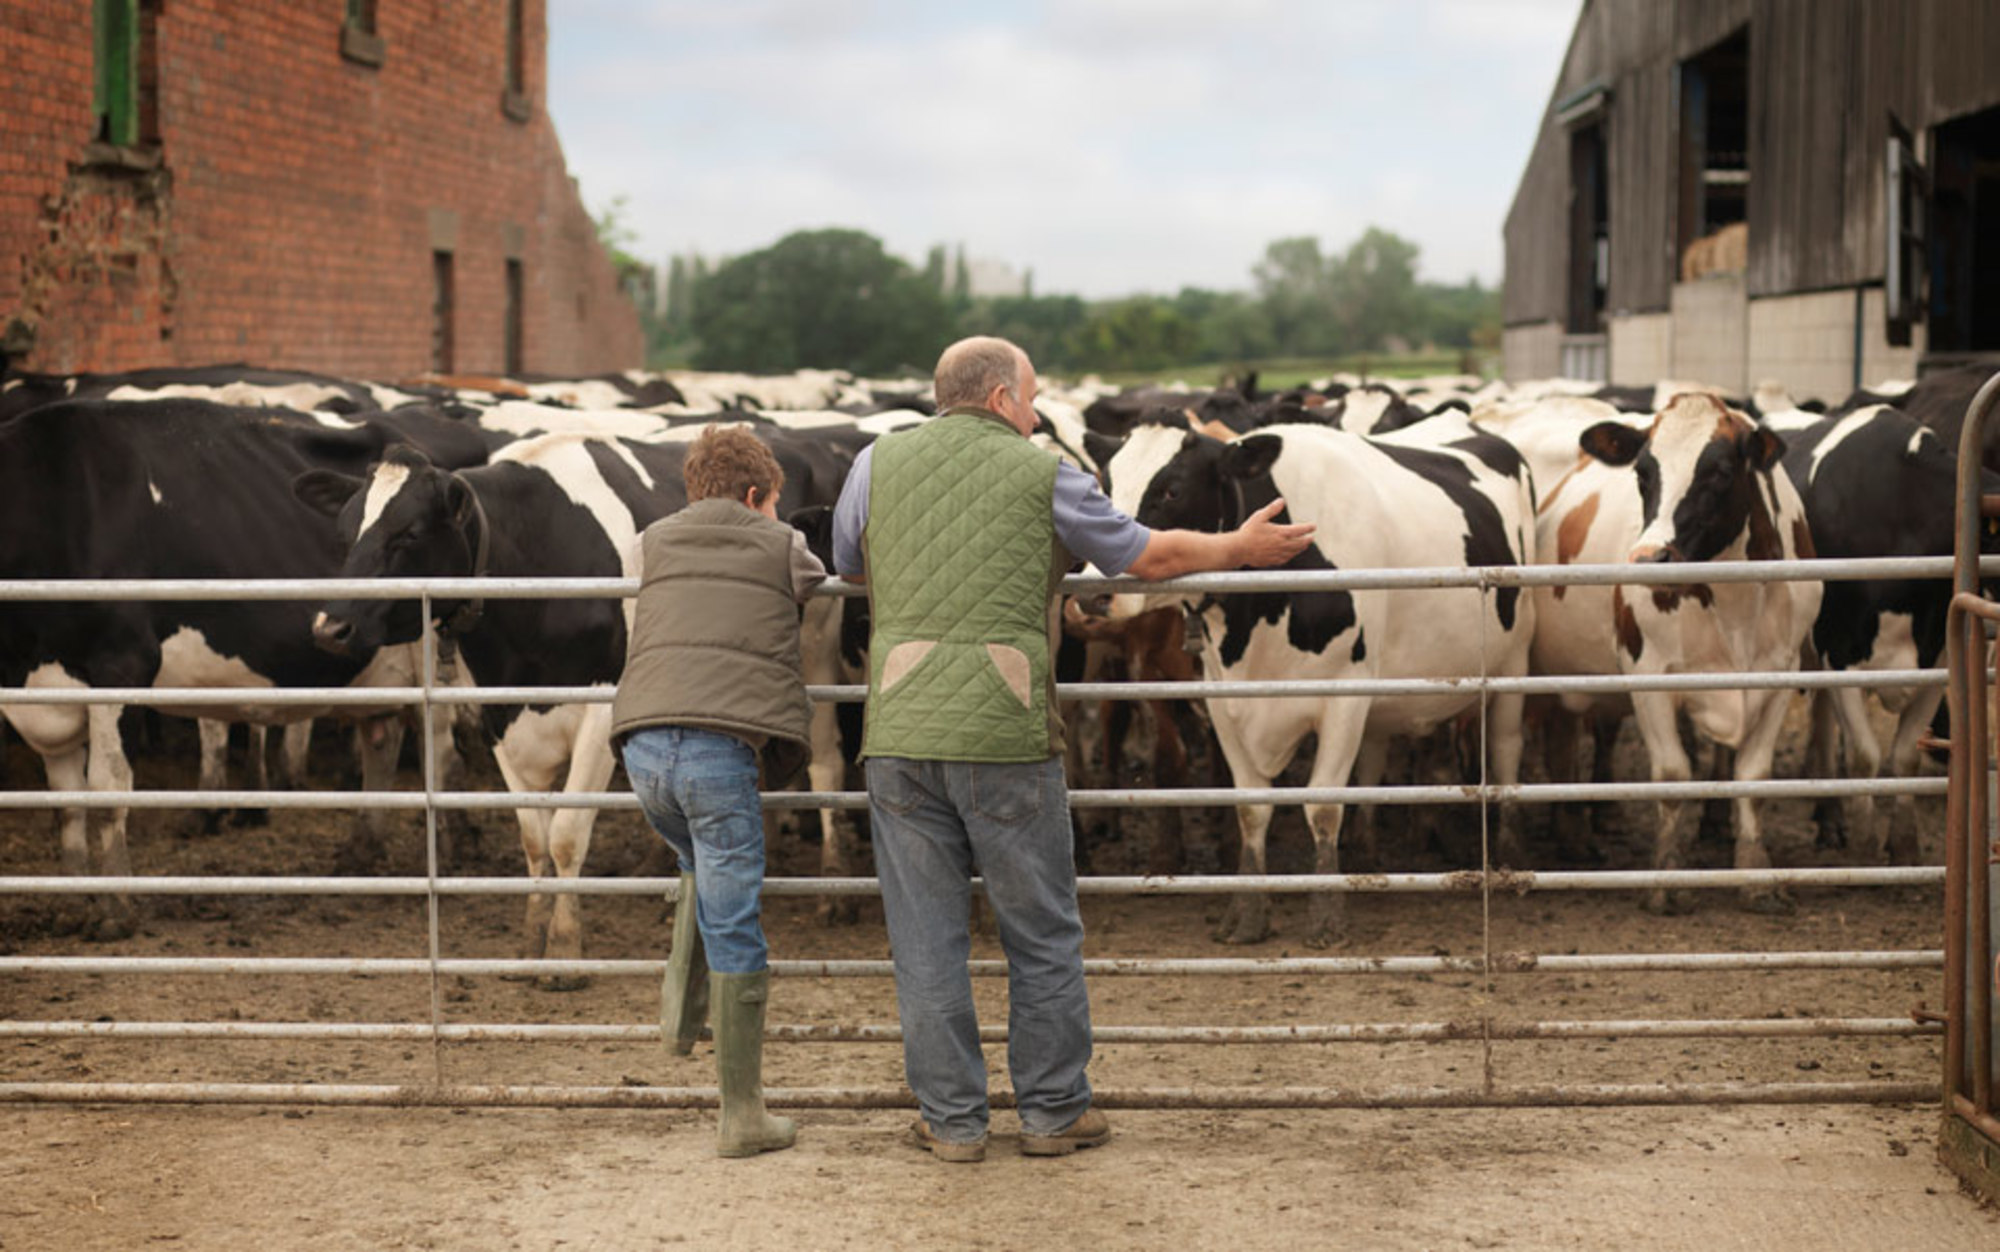 essay on cattle farming Agriculture speech topics for informative or persuasive public speaking engagements including 60 general agro education subjects and 20 farming theses.